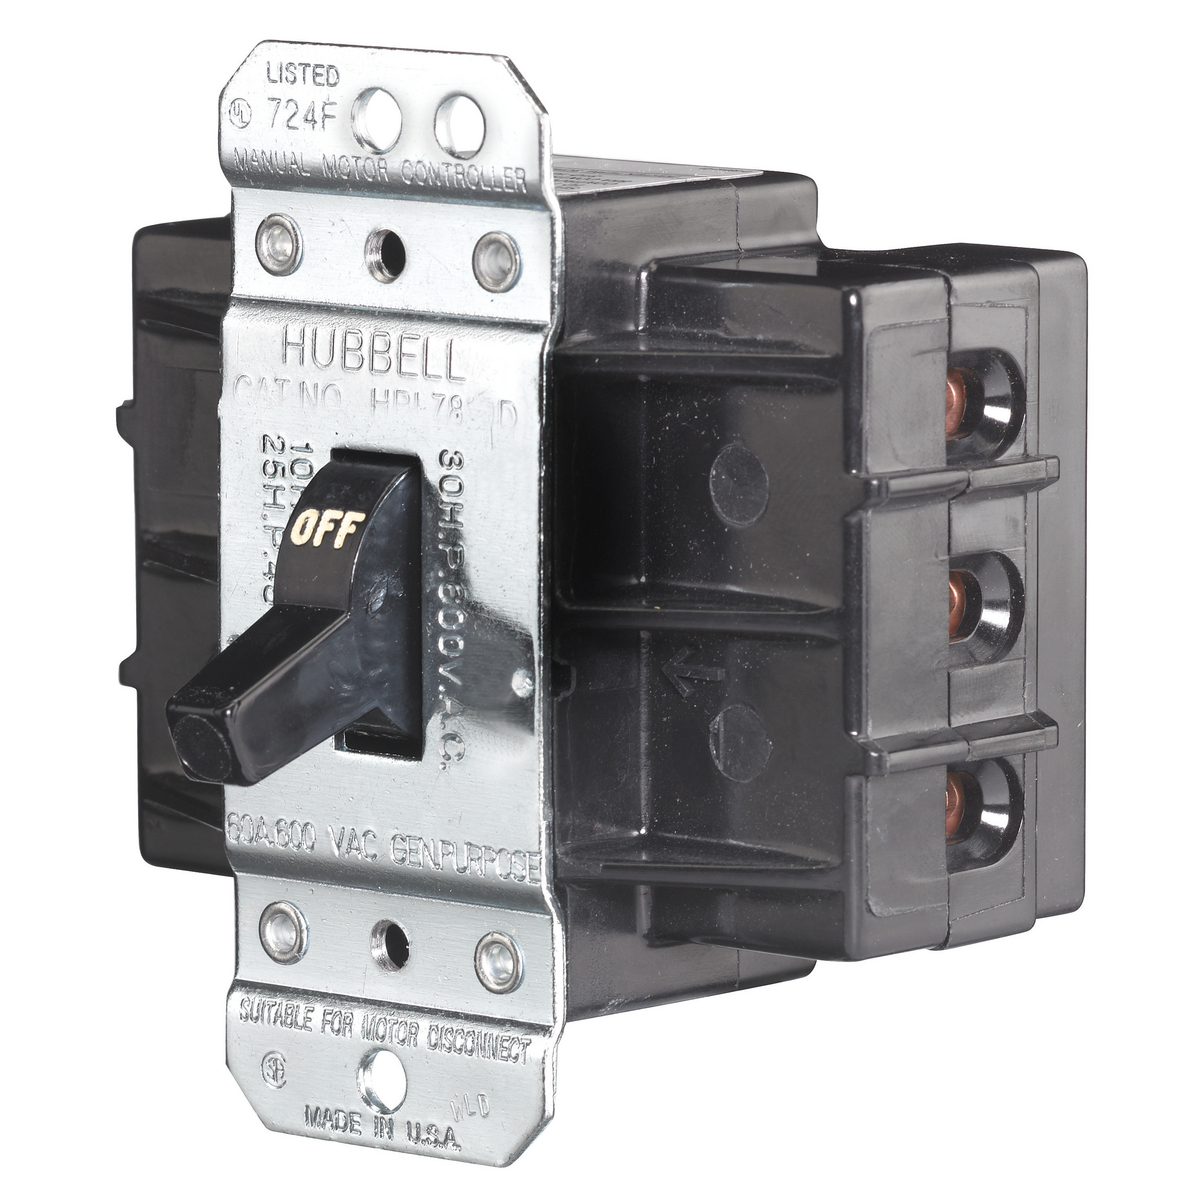 WIRING DEVICE-KELLEMS HUBBELL HBL7863D HUBBELL WIRING DEVICES ...